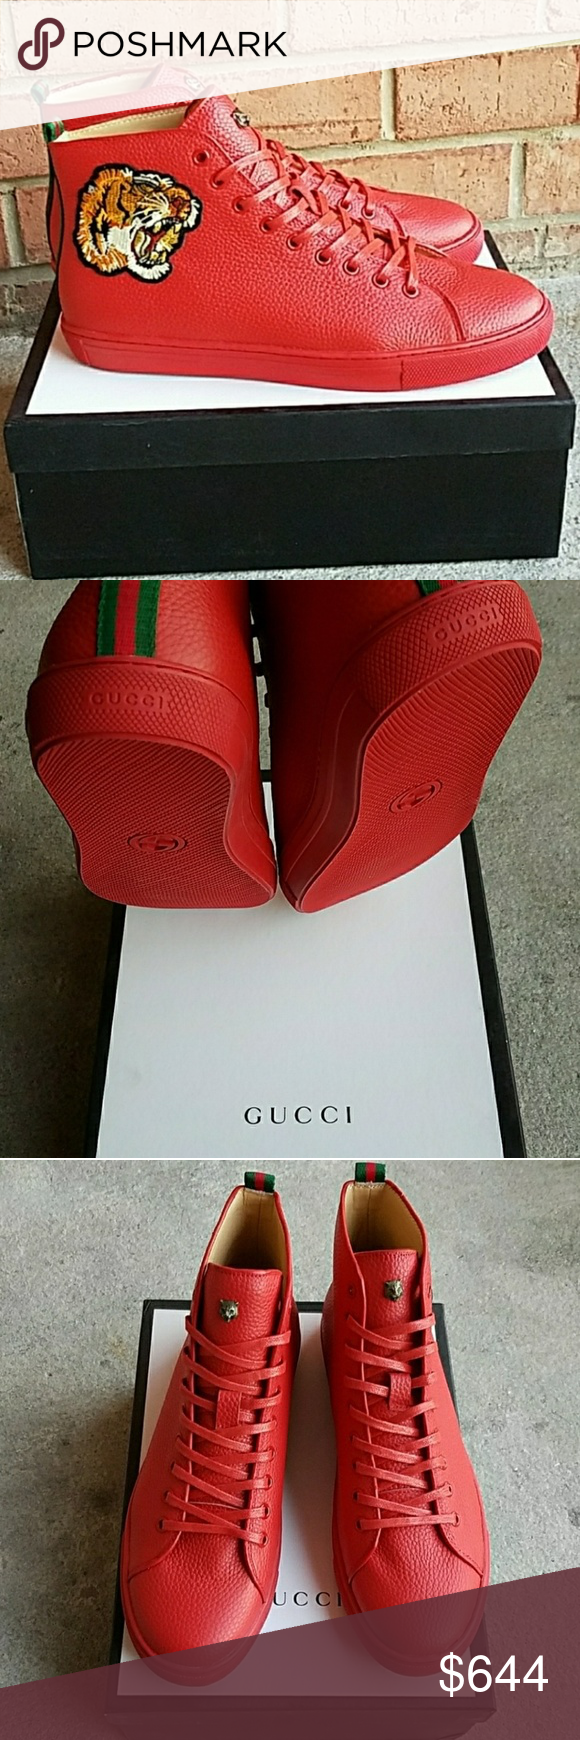 b0d8497ef80 Men s Gucci Tiger High-Top Leather Laced Sneakers Men s Gucci Appliqués Leather  High-Top Material  Calf Skin (Soft Leather) Color  Black Size  45 Item no.